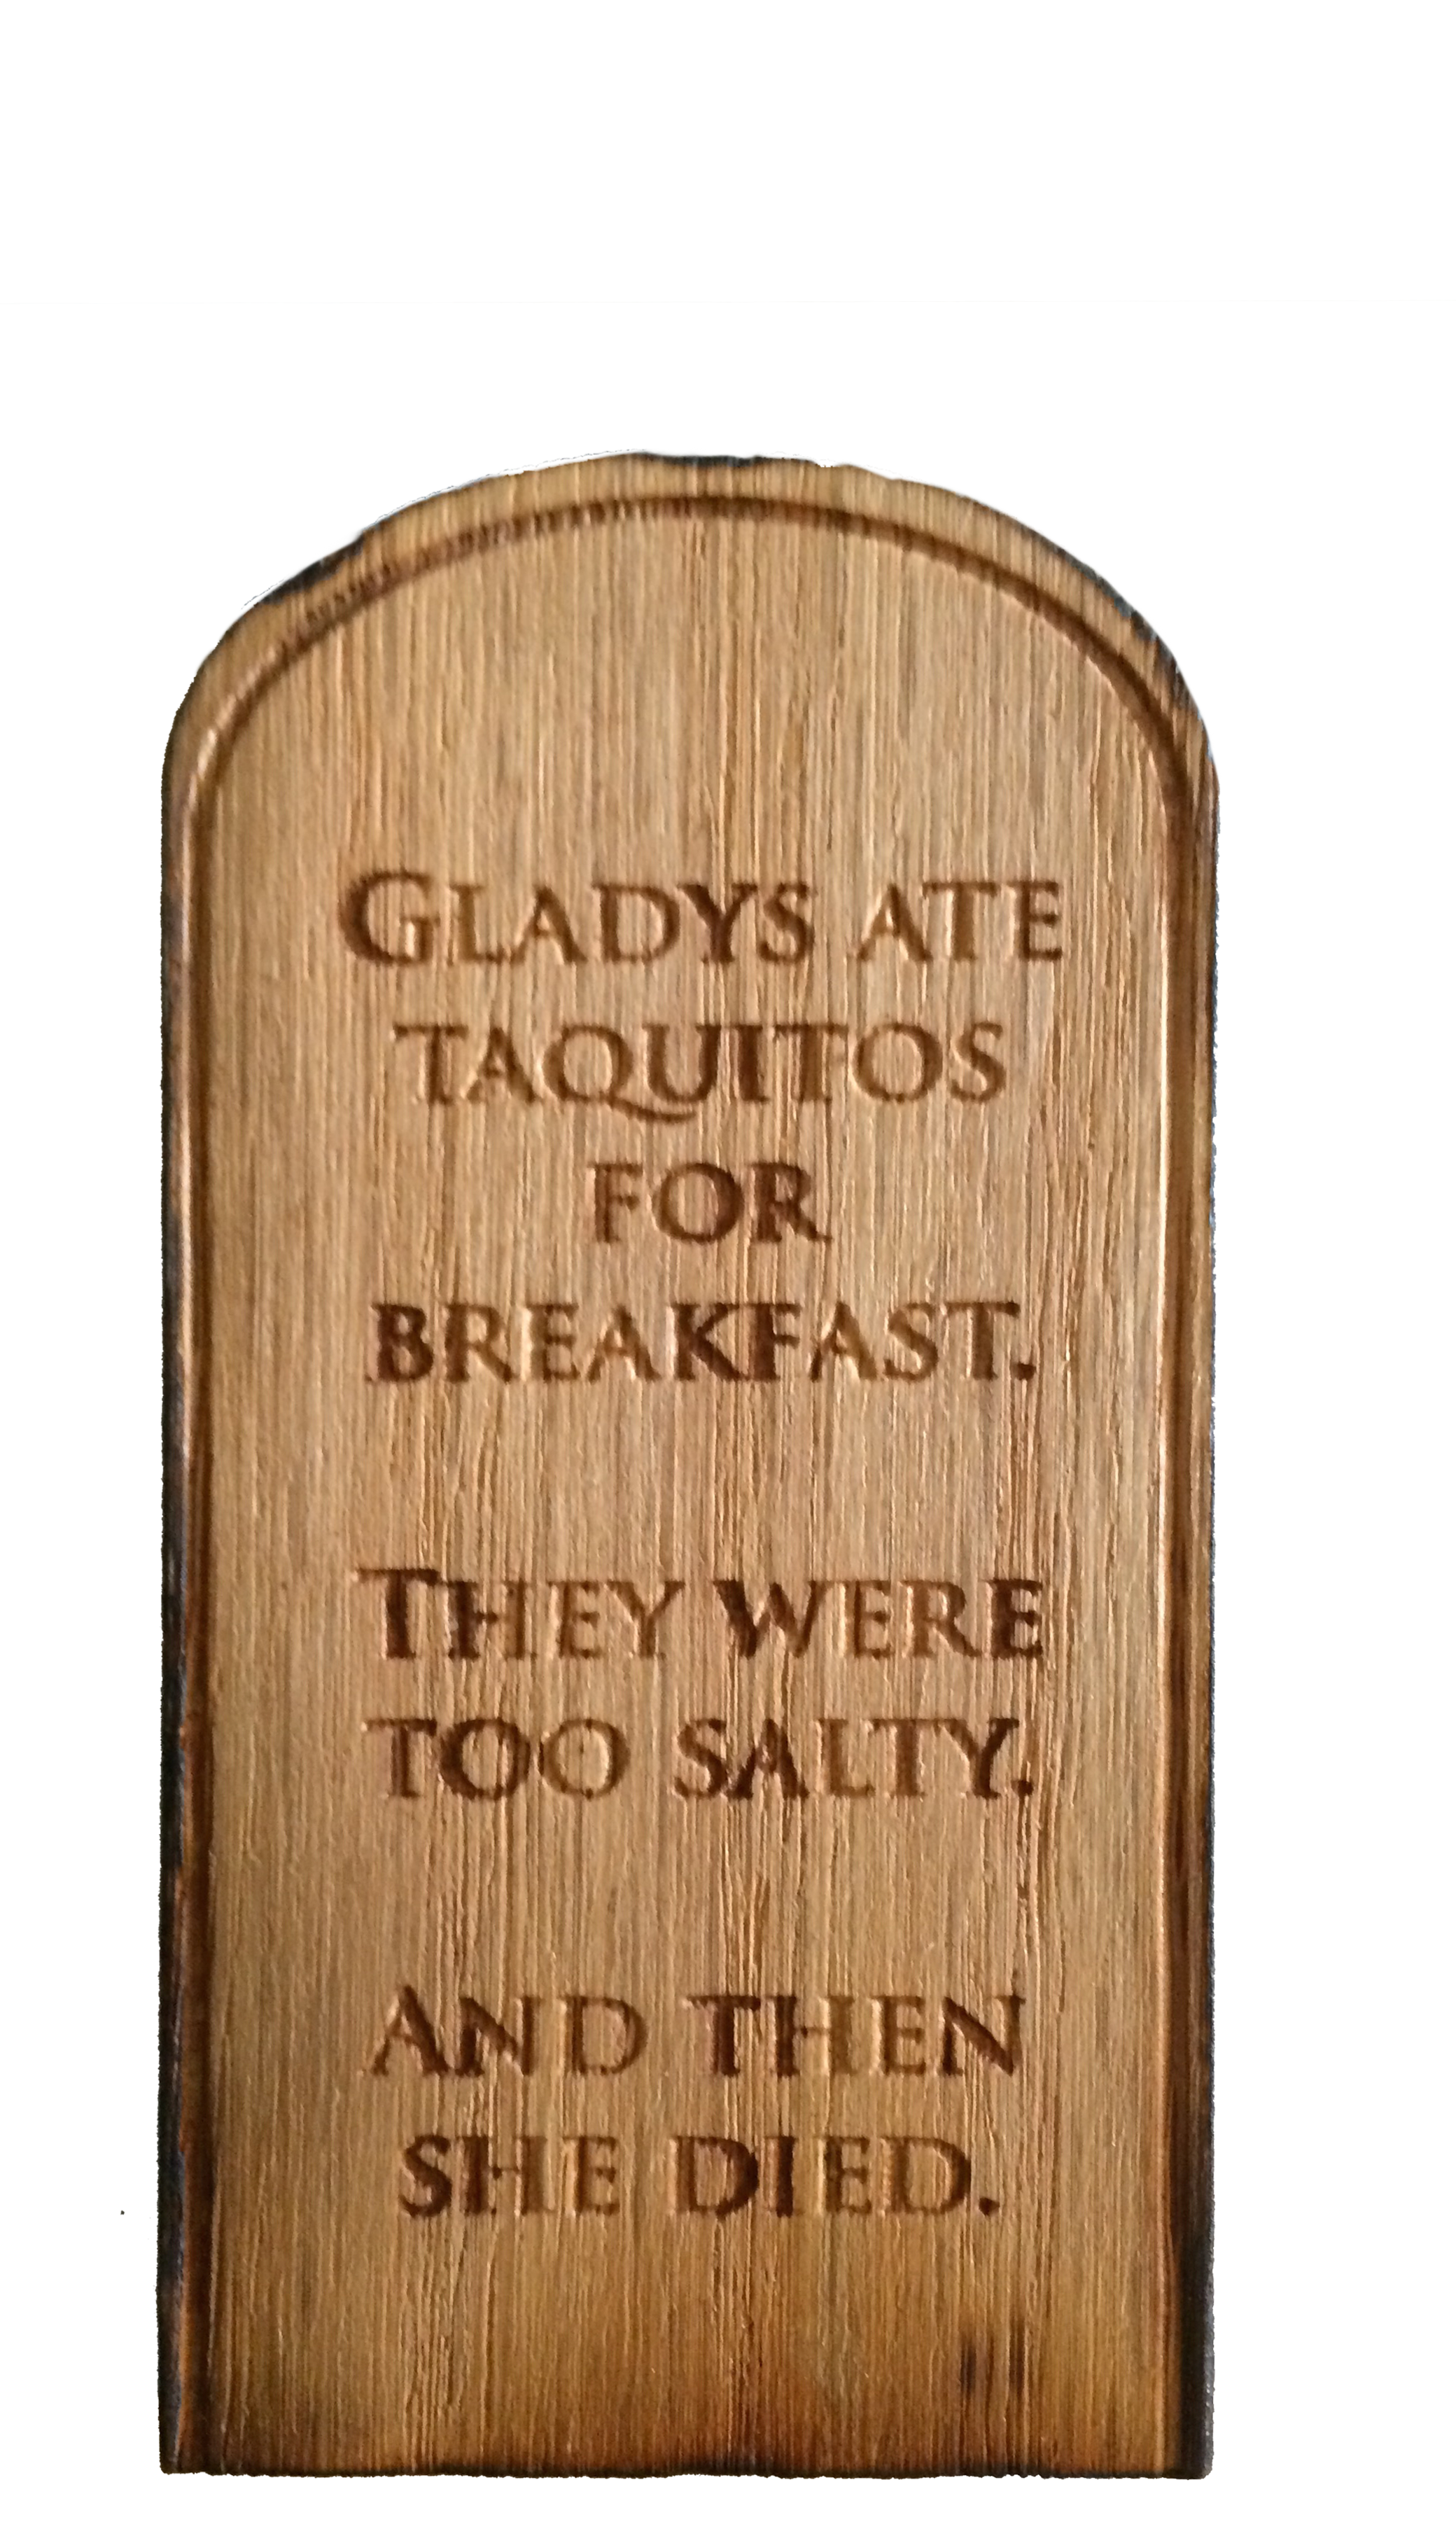 Gladys-tombstones.png